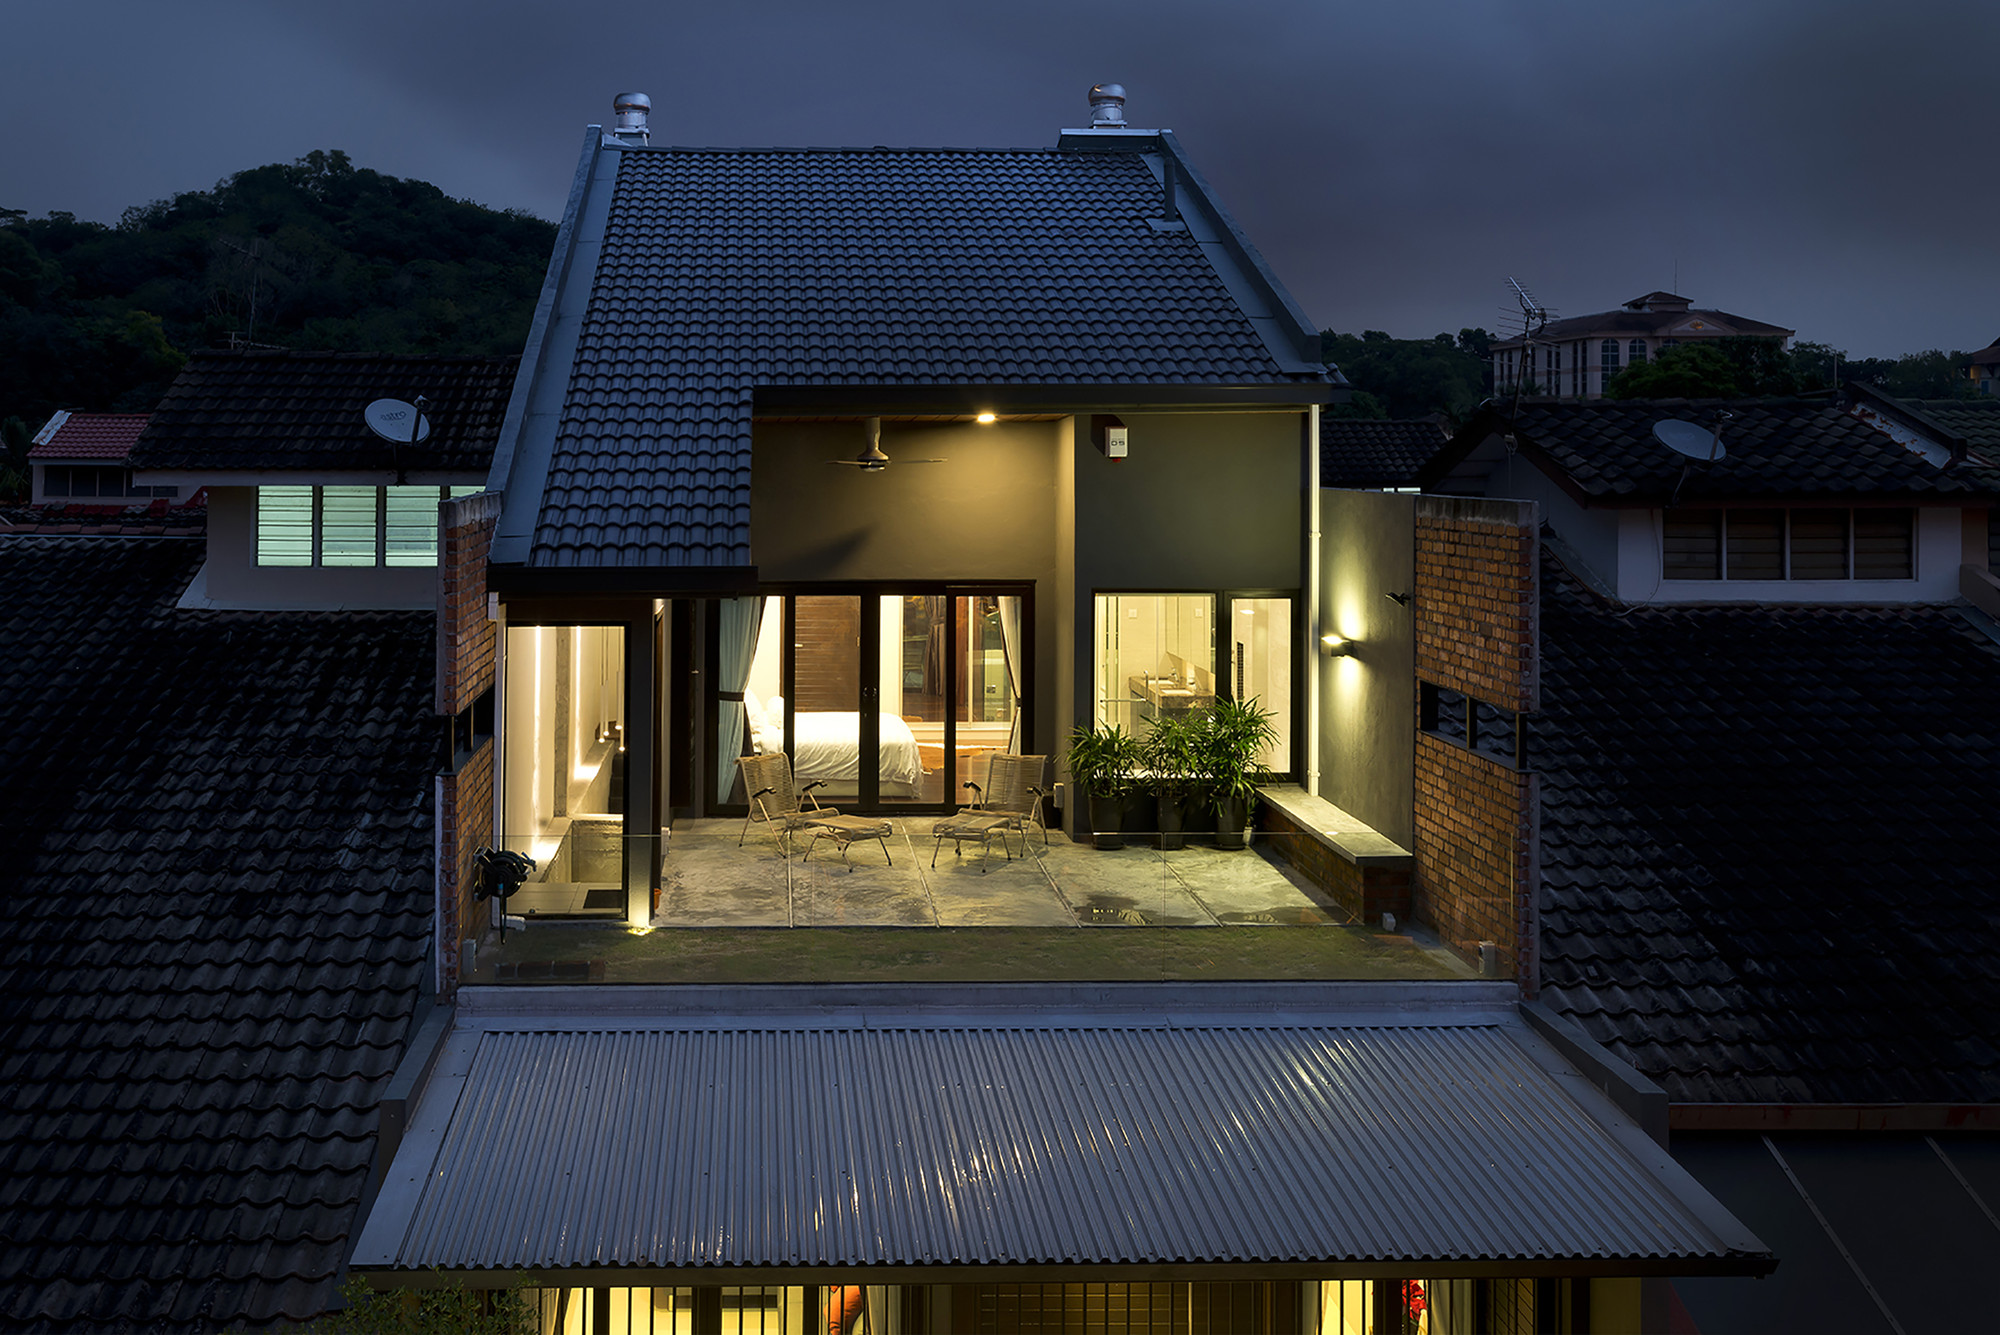 23 Terrace / DRTAN LM Architect, © H. Lin Ho